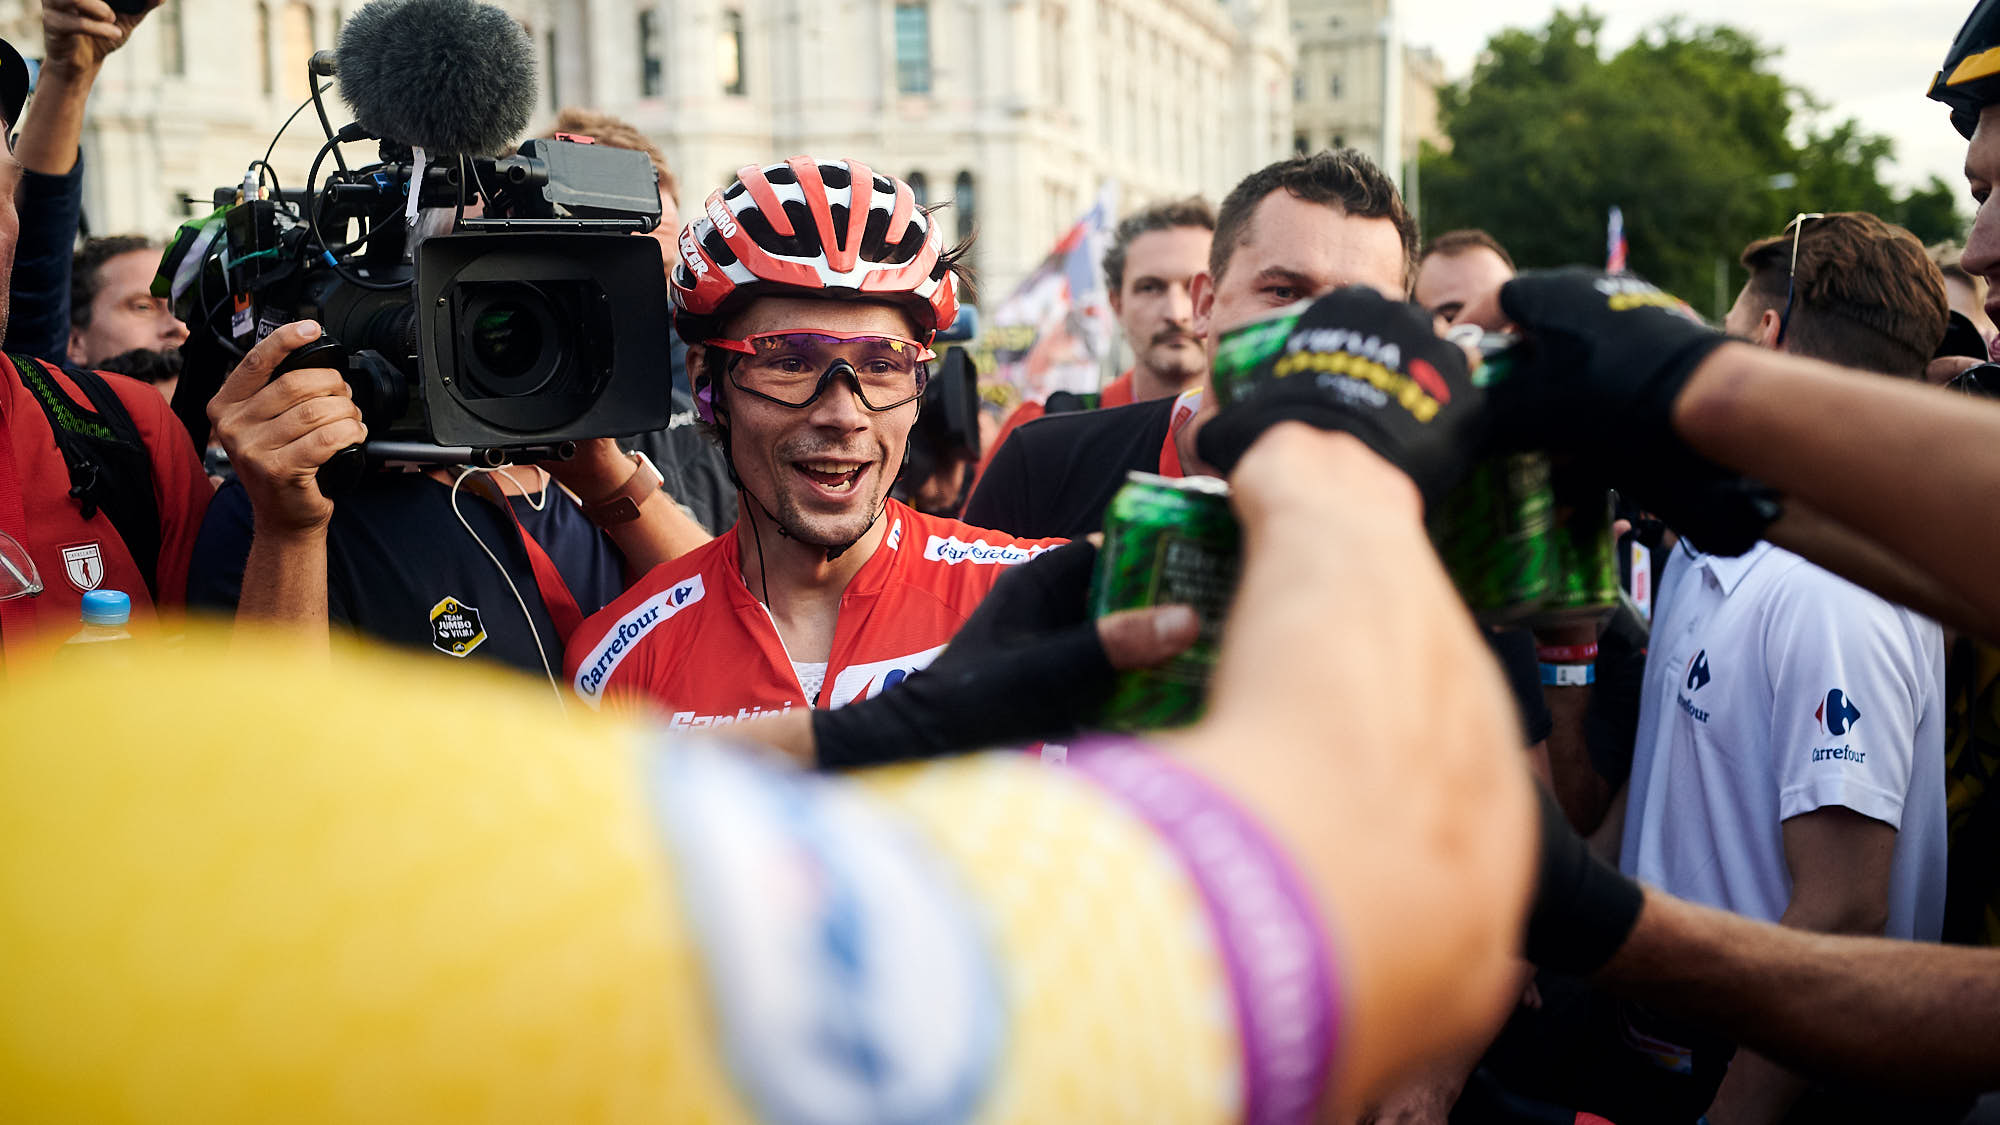 Elite Slovenian cyclist Primoz Roglic celebrating after winning La Vuelta